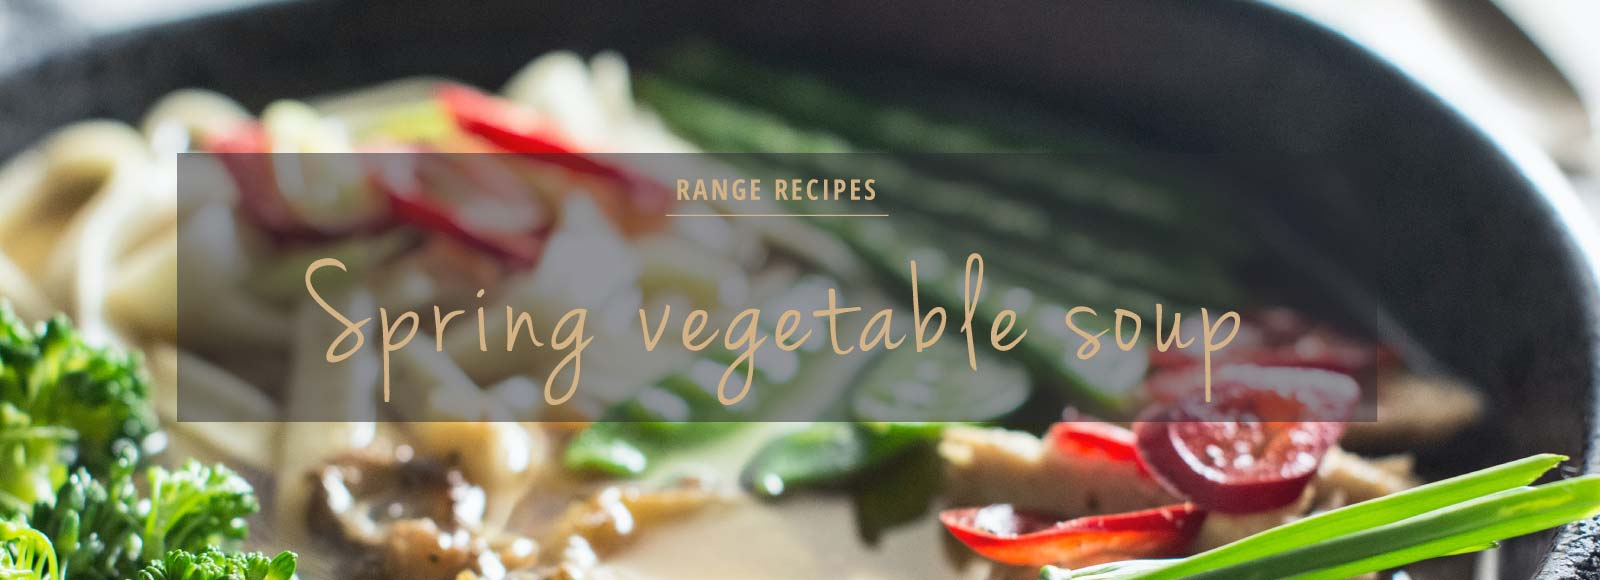 Spring vegetable soup